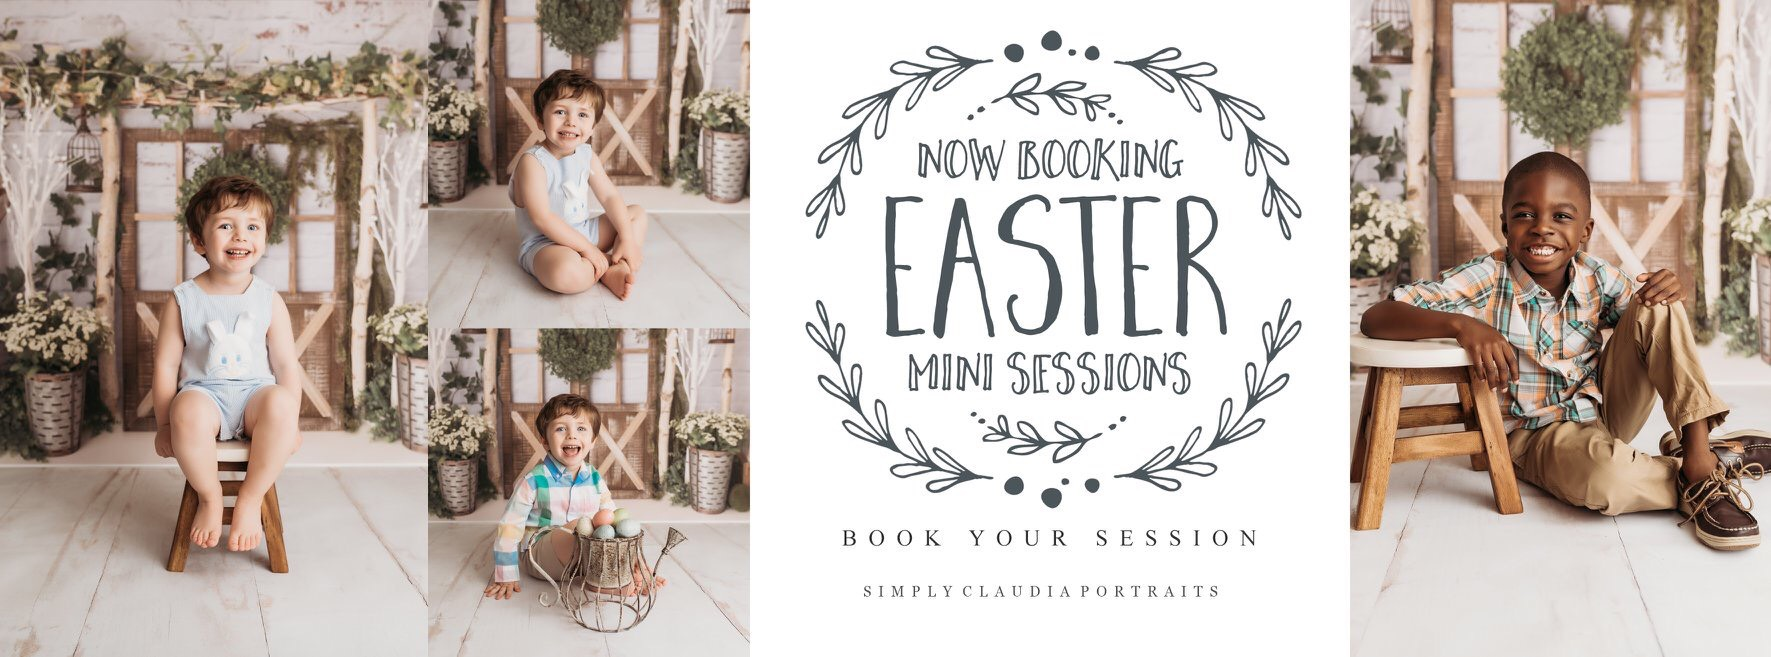 Easter Mini Sessions | March 9 - April 20, 2019 | $50 | 20 Min Session | 2 Hi Resolution Digital Images | Facebook Timeline | Online Gallery | Print Release | To book click  here